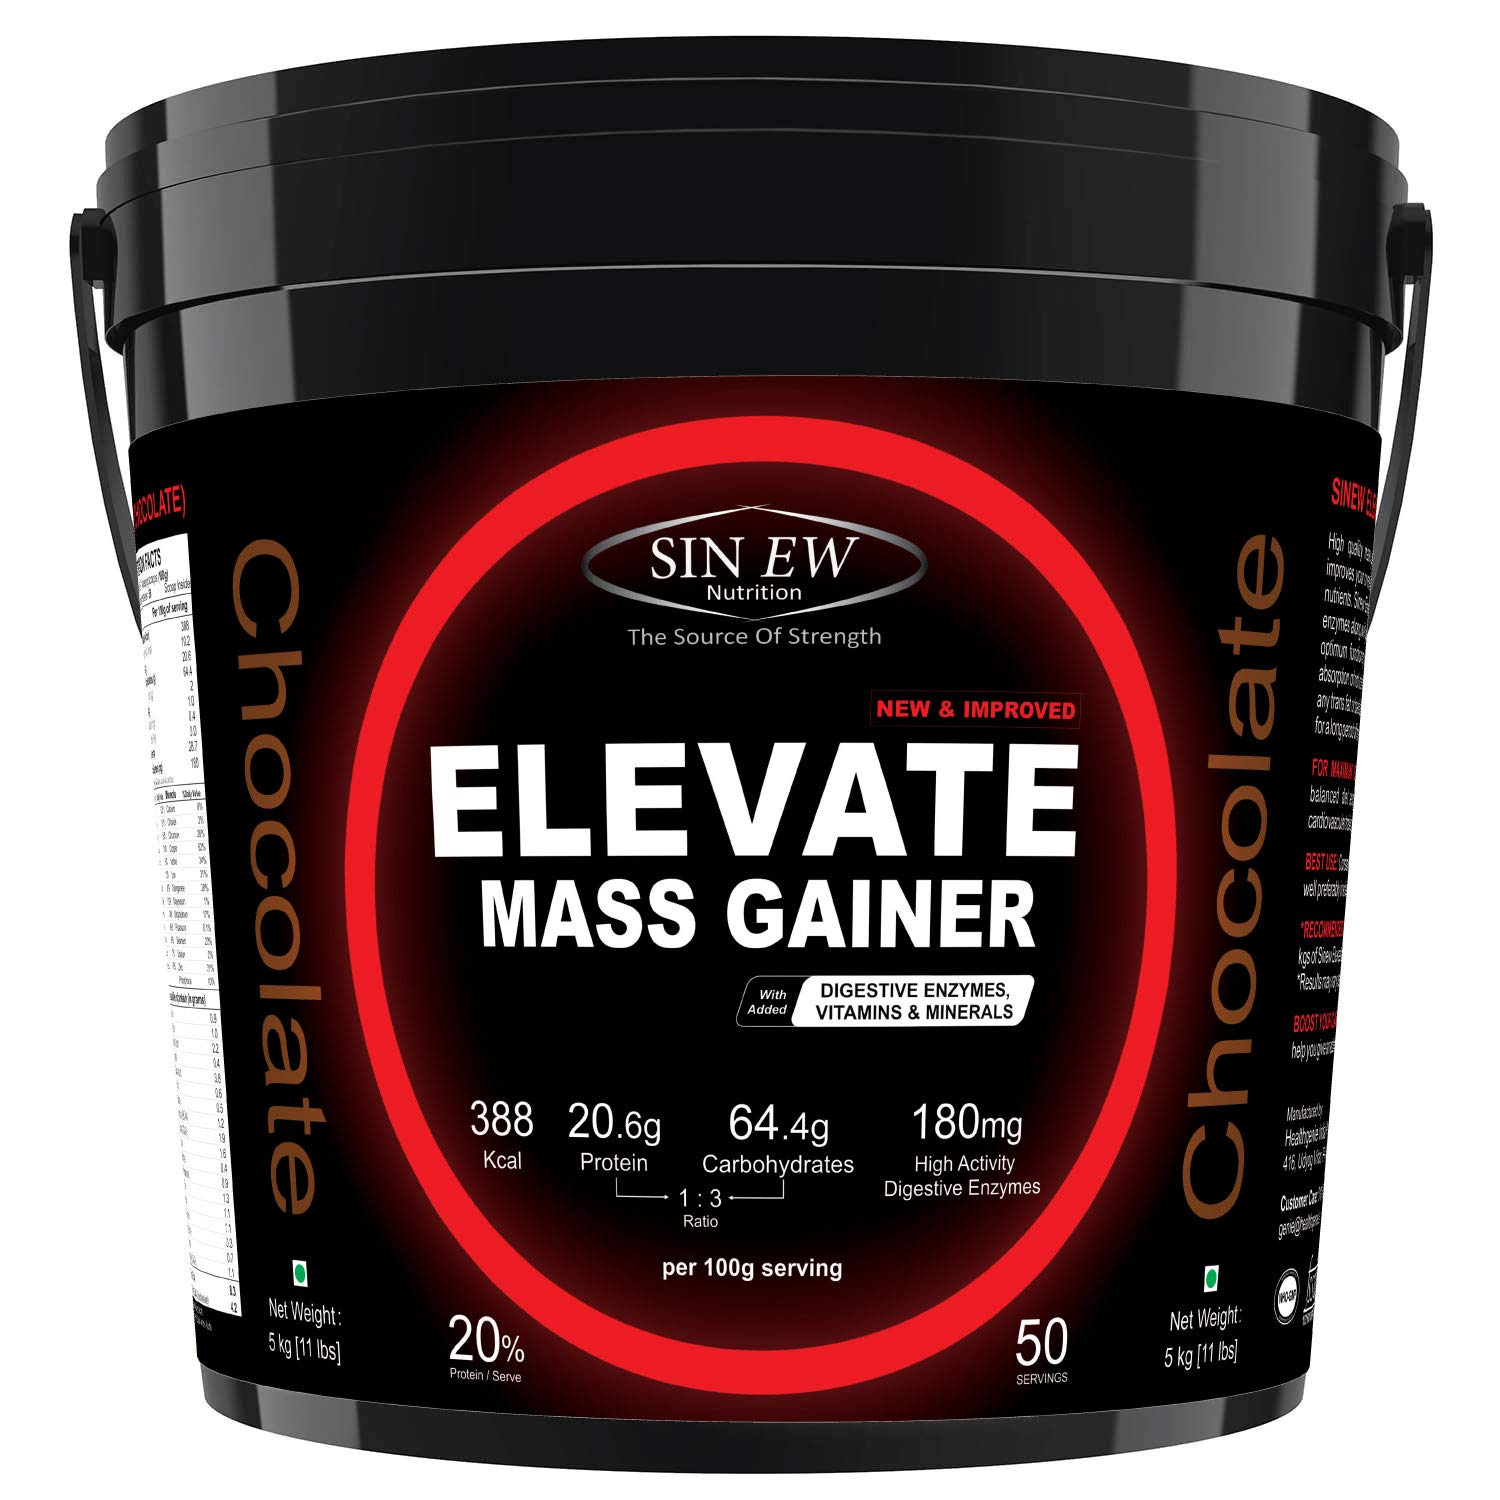 Sinew Nutrition Elevate Mass Gainer With Digestive Enzymes, 5 Kg (Chocolate Flavour)